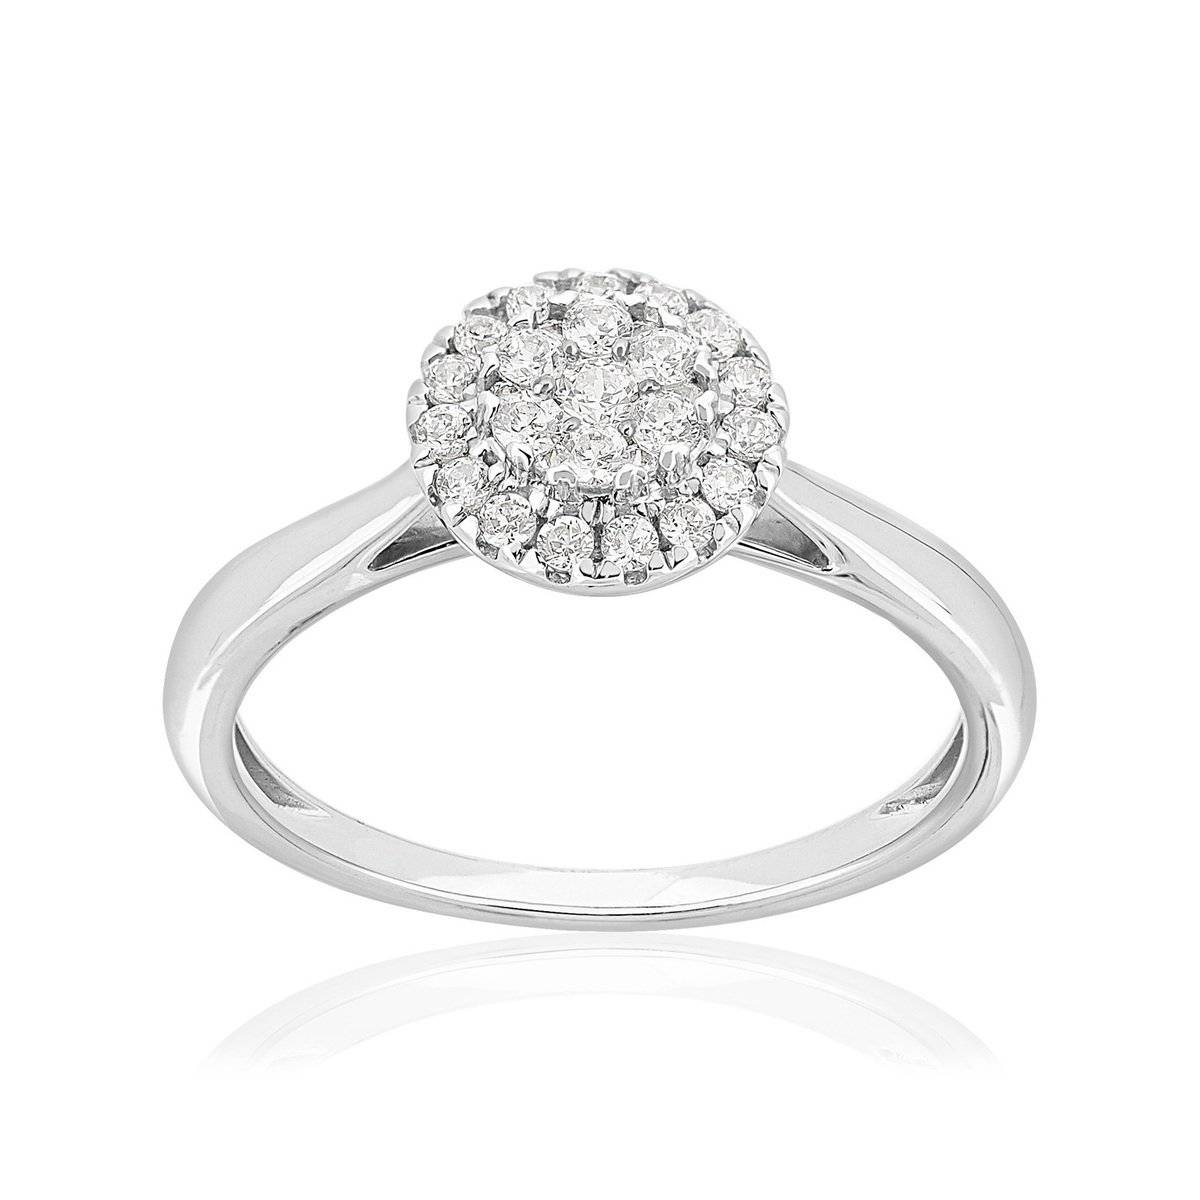 MATY Bague or 750 blanc diamants synthétiques 0,33 carat- MATY